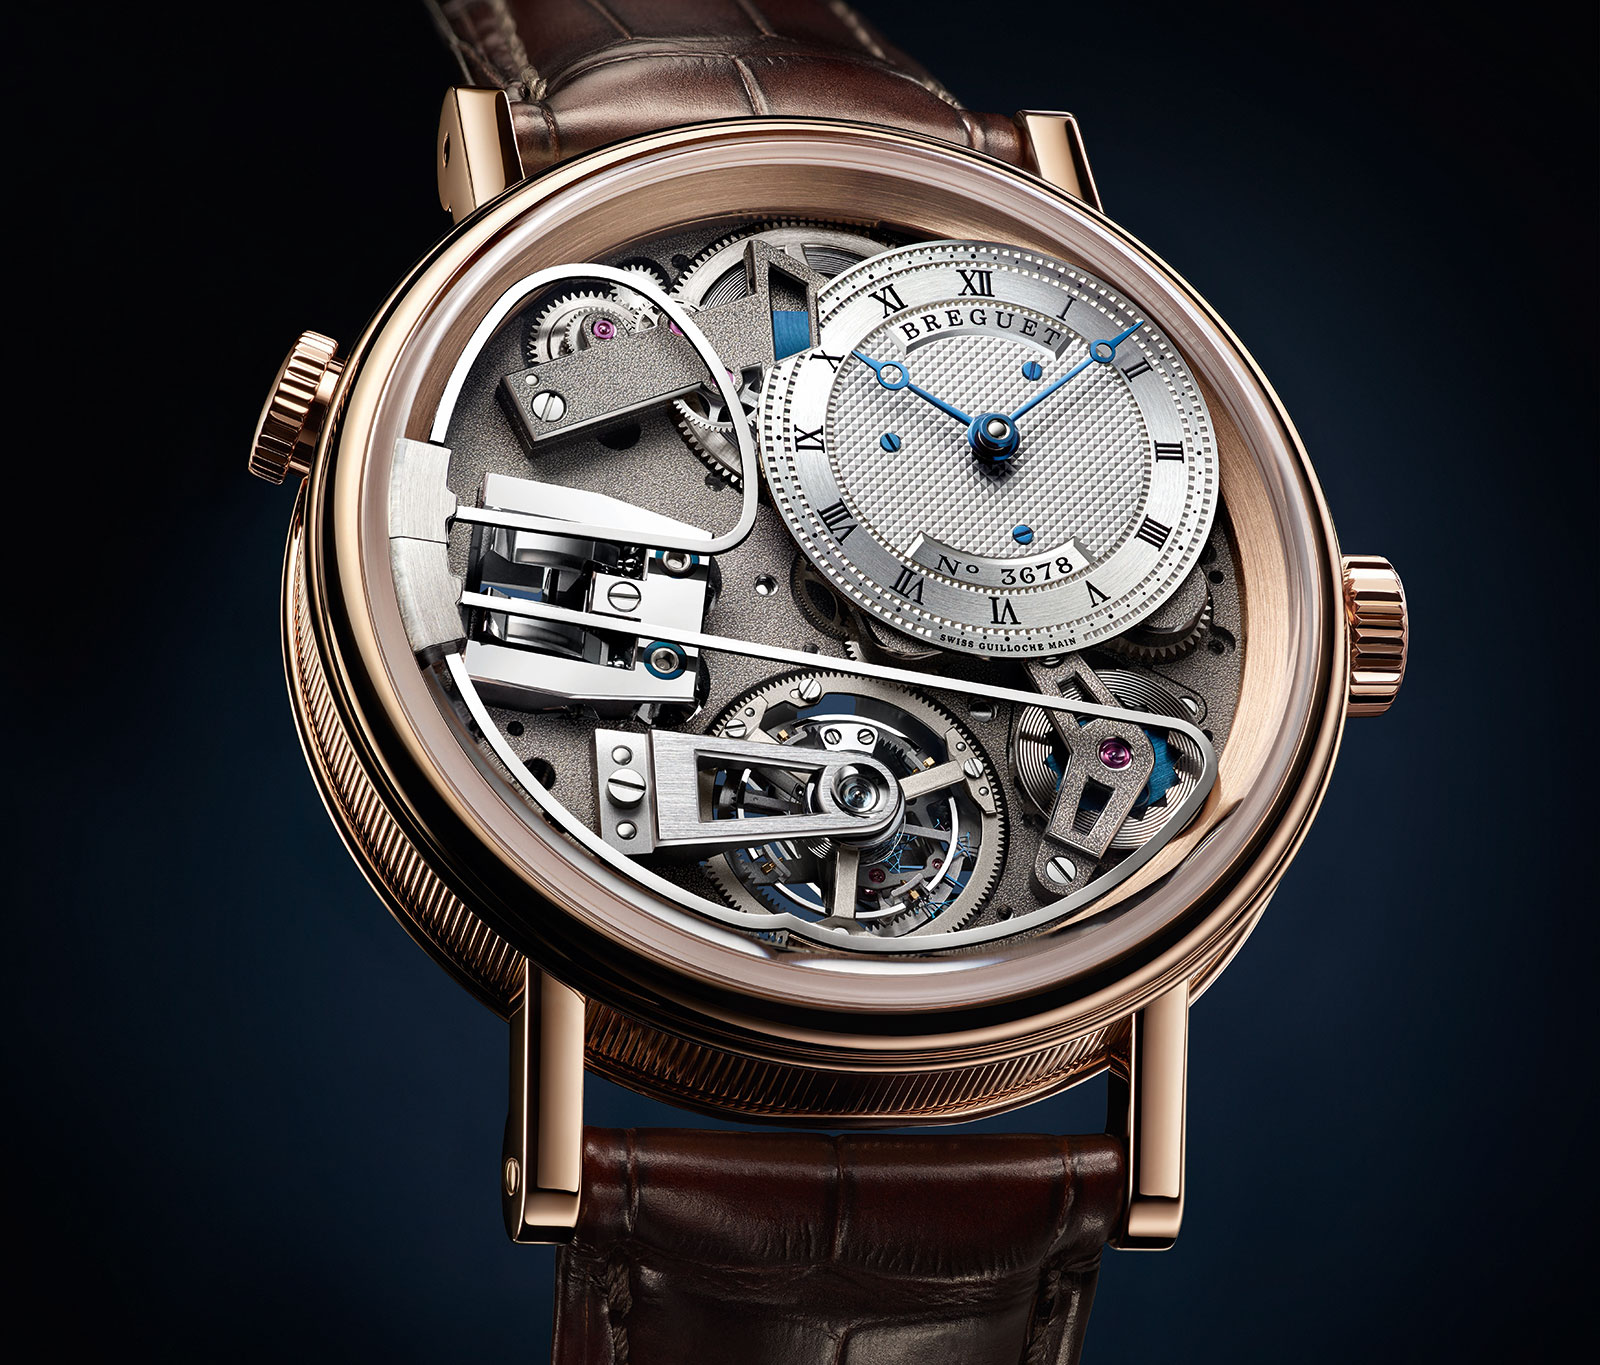 Breguet-Tradition-Repetition-Minutes-Tourbillon-7087-3